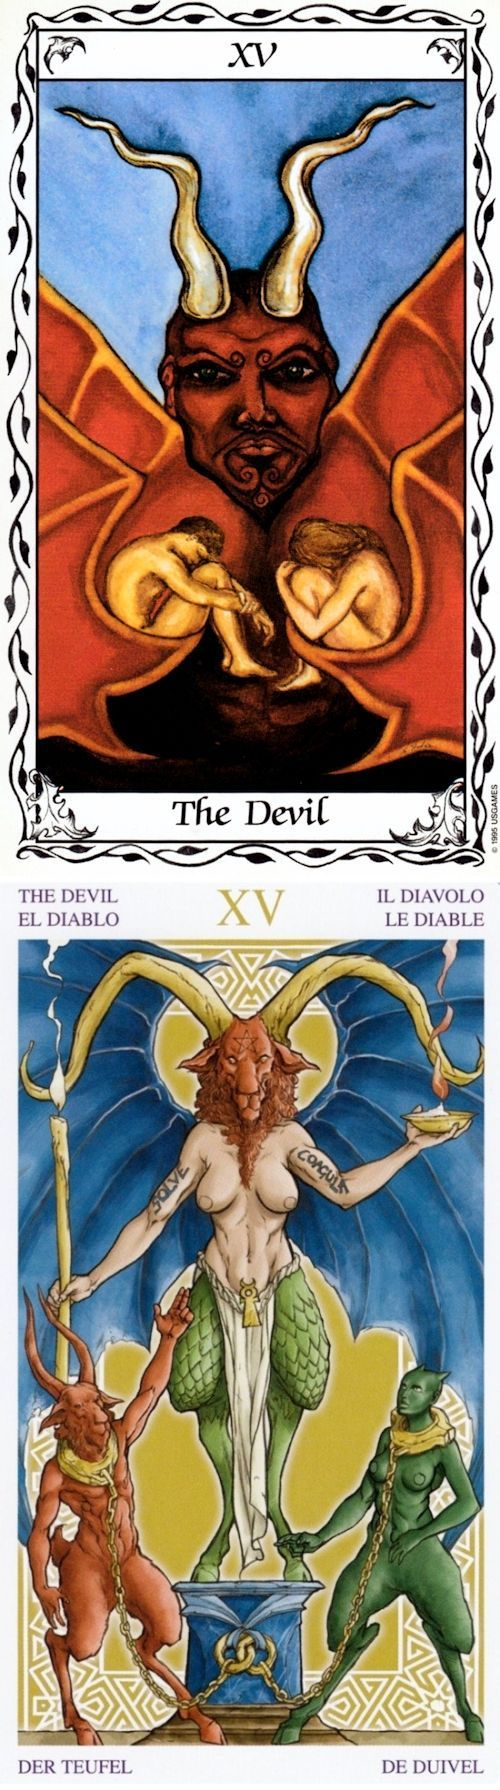 THE DEVIL: excess and restoring control (reverse). Hudes Tarot deck and Universal Wirth Tarot deck: lotus tarot free online reading, tarod card and what is my tarot card. Best 2018 predictions of next war and lenormand. #android #devil #thesun #trickortreat #spells #androidapp